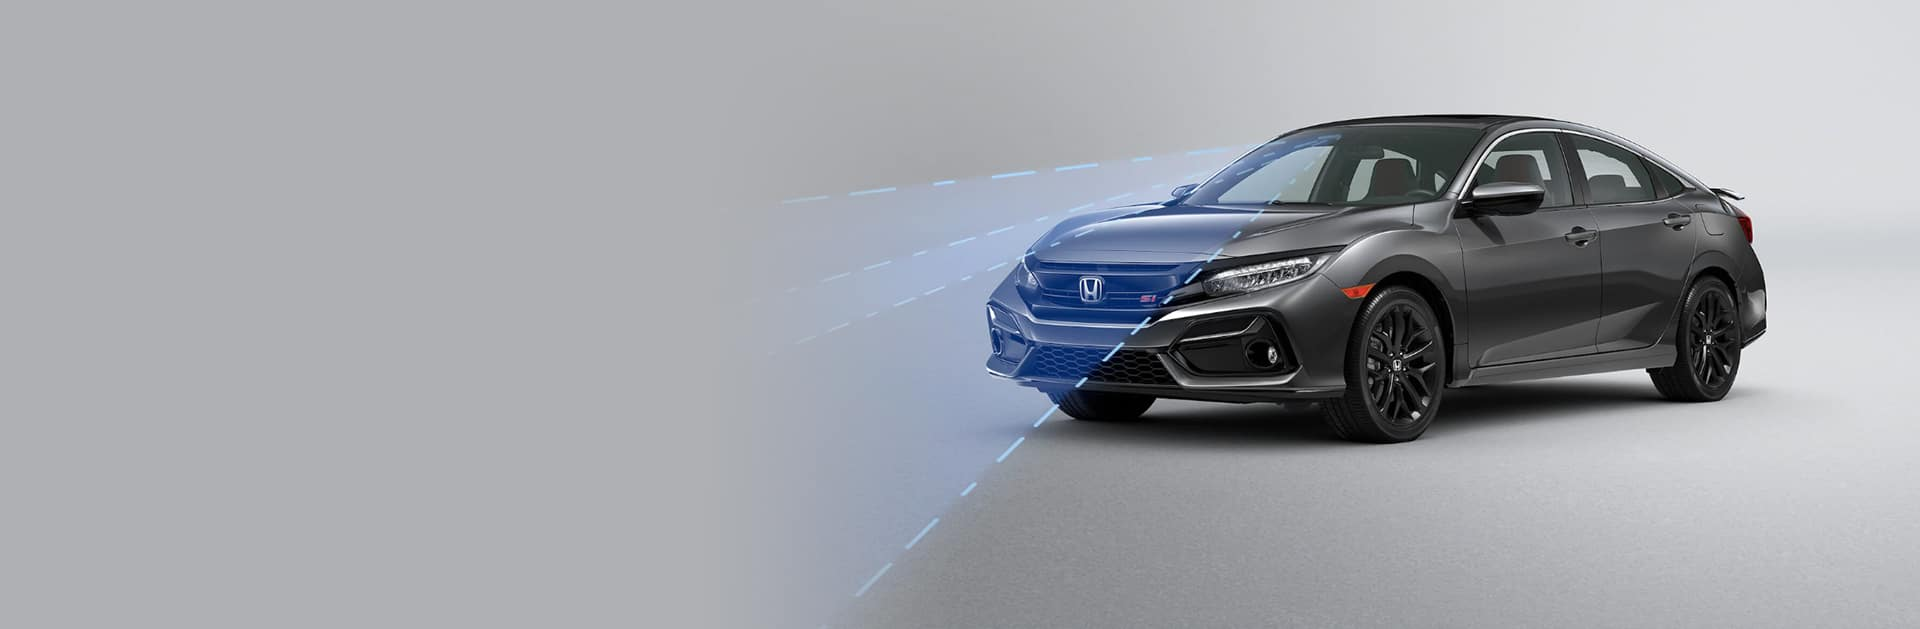 2020 Honda Civic with Honda Sensing